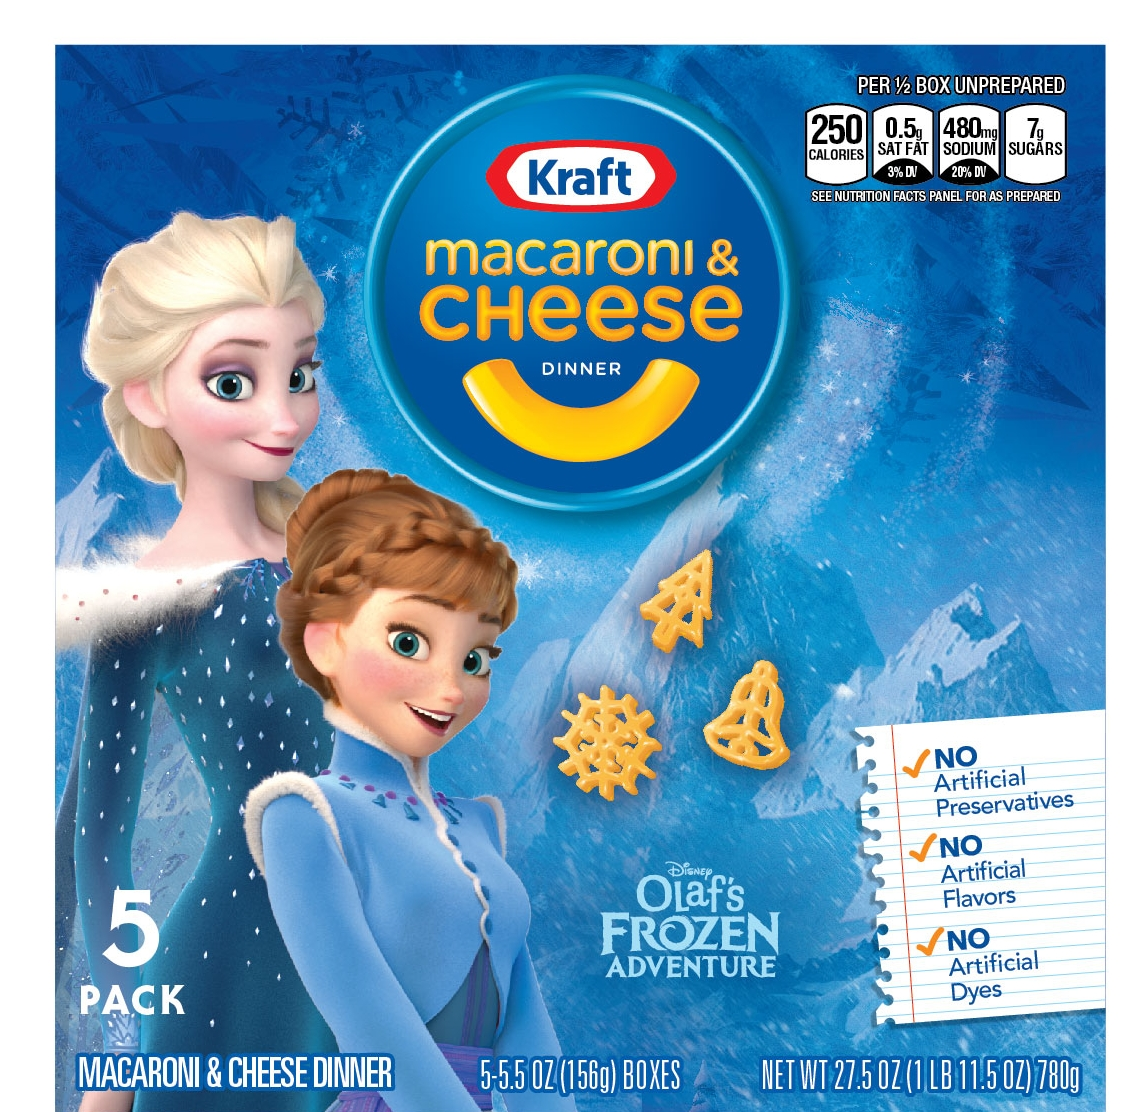 Costco Mac & Cheese Design,  created backgrounds and had a library of characters to choose from. Logo had to stay top center. @soulsight